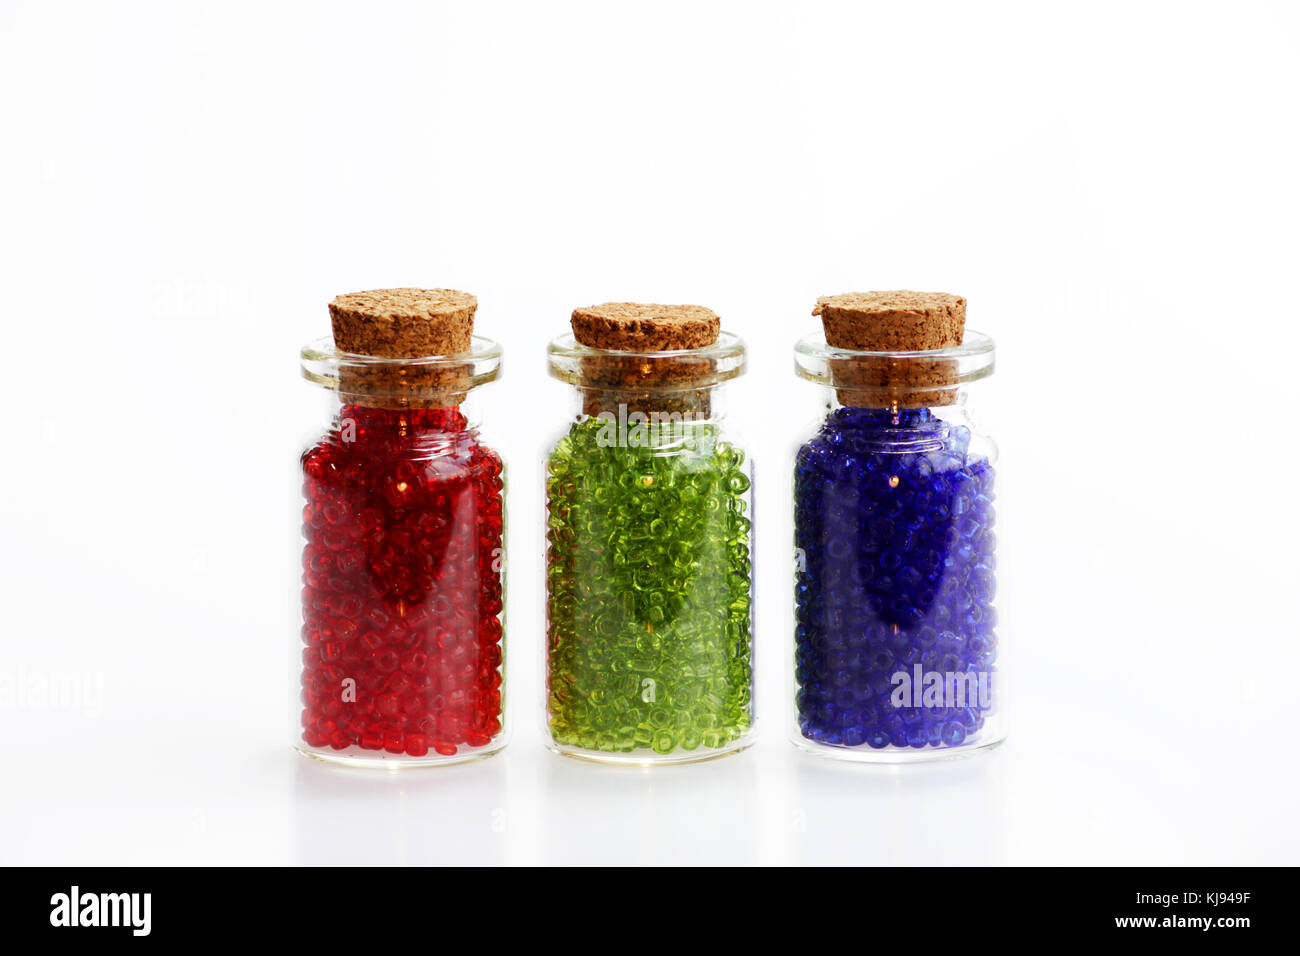 Three tiny glass bottles with a cork stopper, filled with a rainbow colours of beads, on a white background. Red, Stock Photo